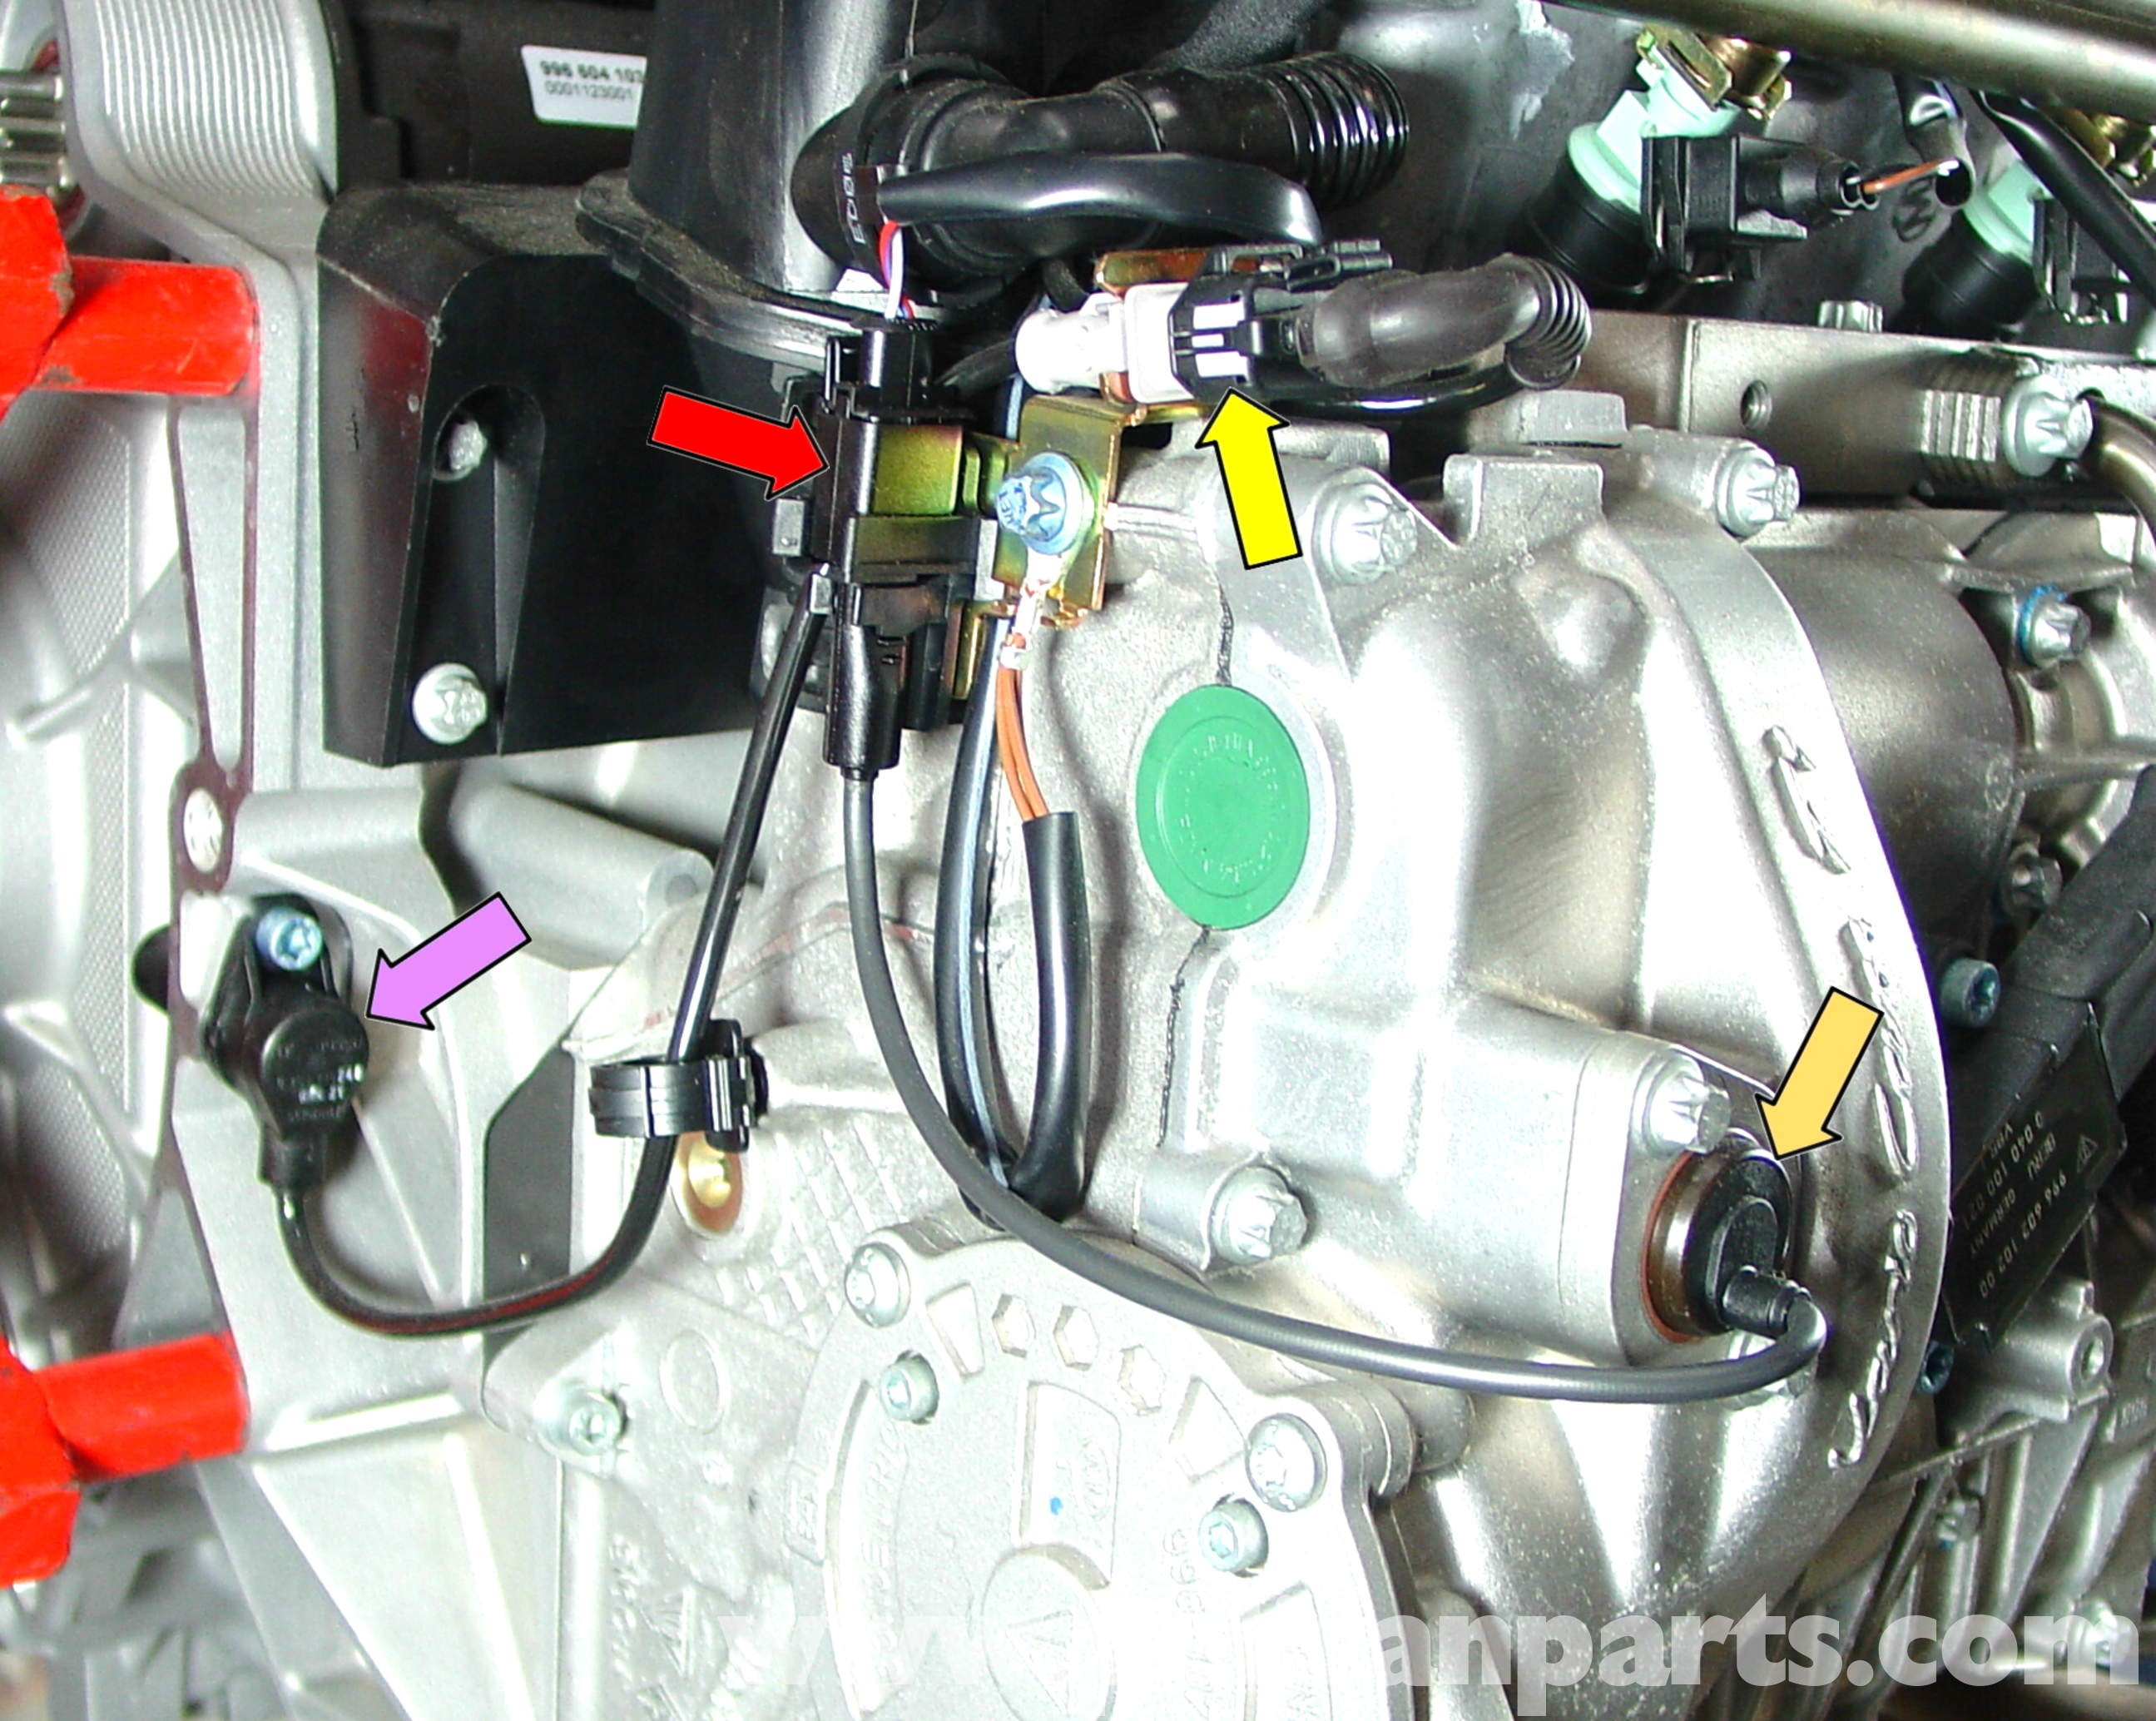 Porsche 911 Engine Diagram Porsche 911 Carrera Engine Sensor Replacement 996 1998 2005 Of Porsche 911 Engine Diagram